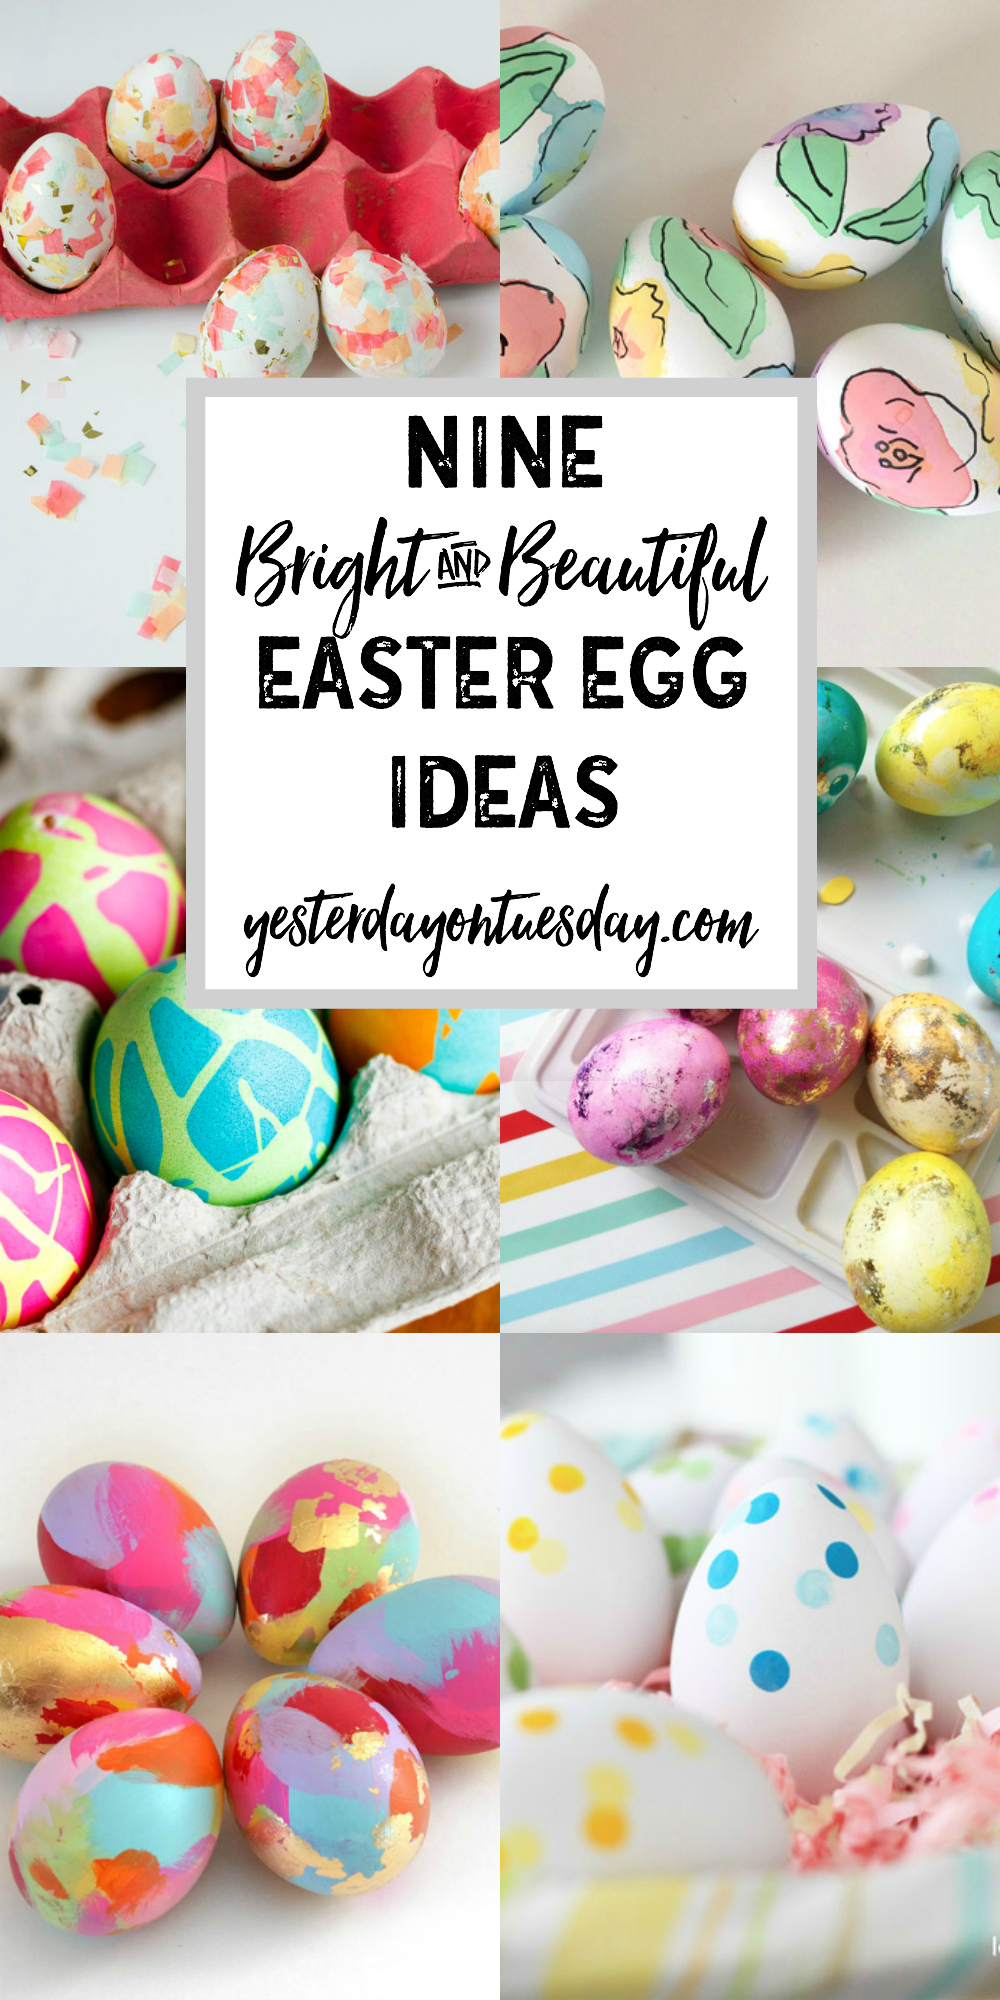 9 Bright and Beautiful Easter Egg Ideas: Lovely ideas for creating gorgeous Easter eggs.